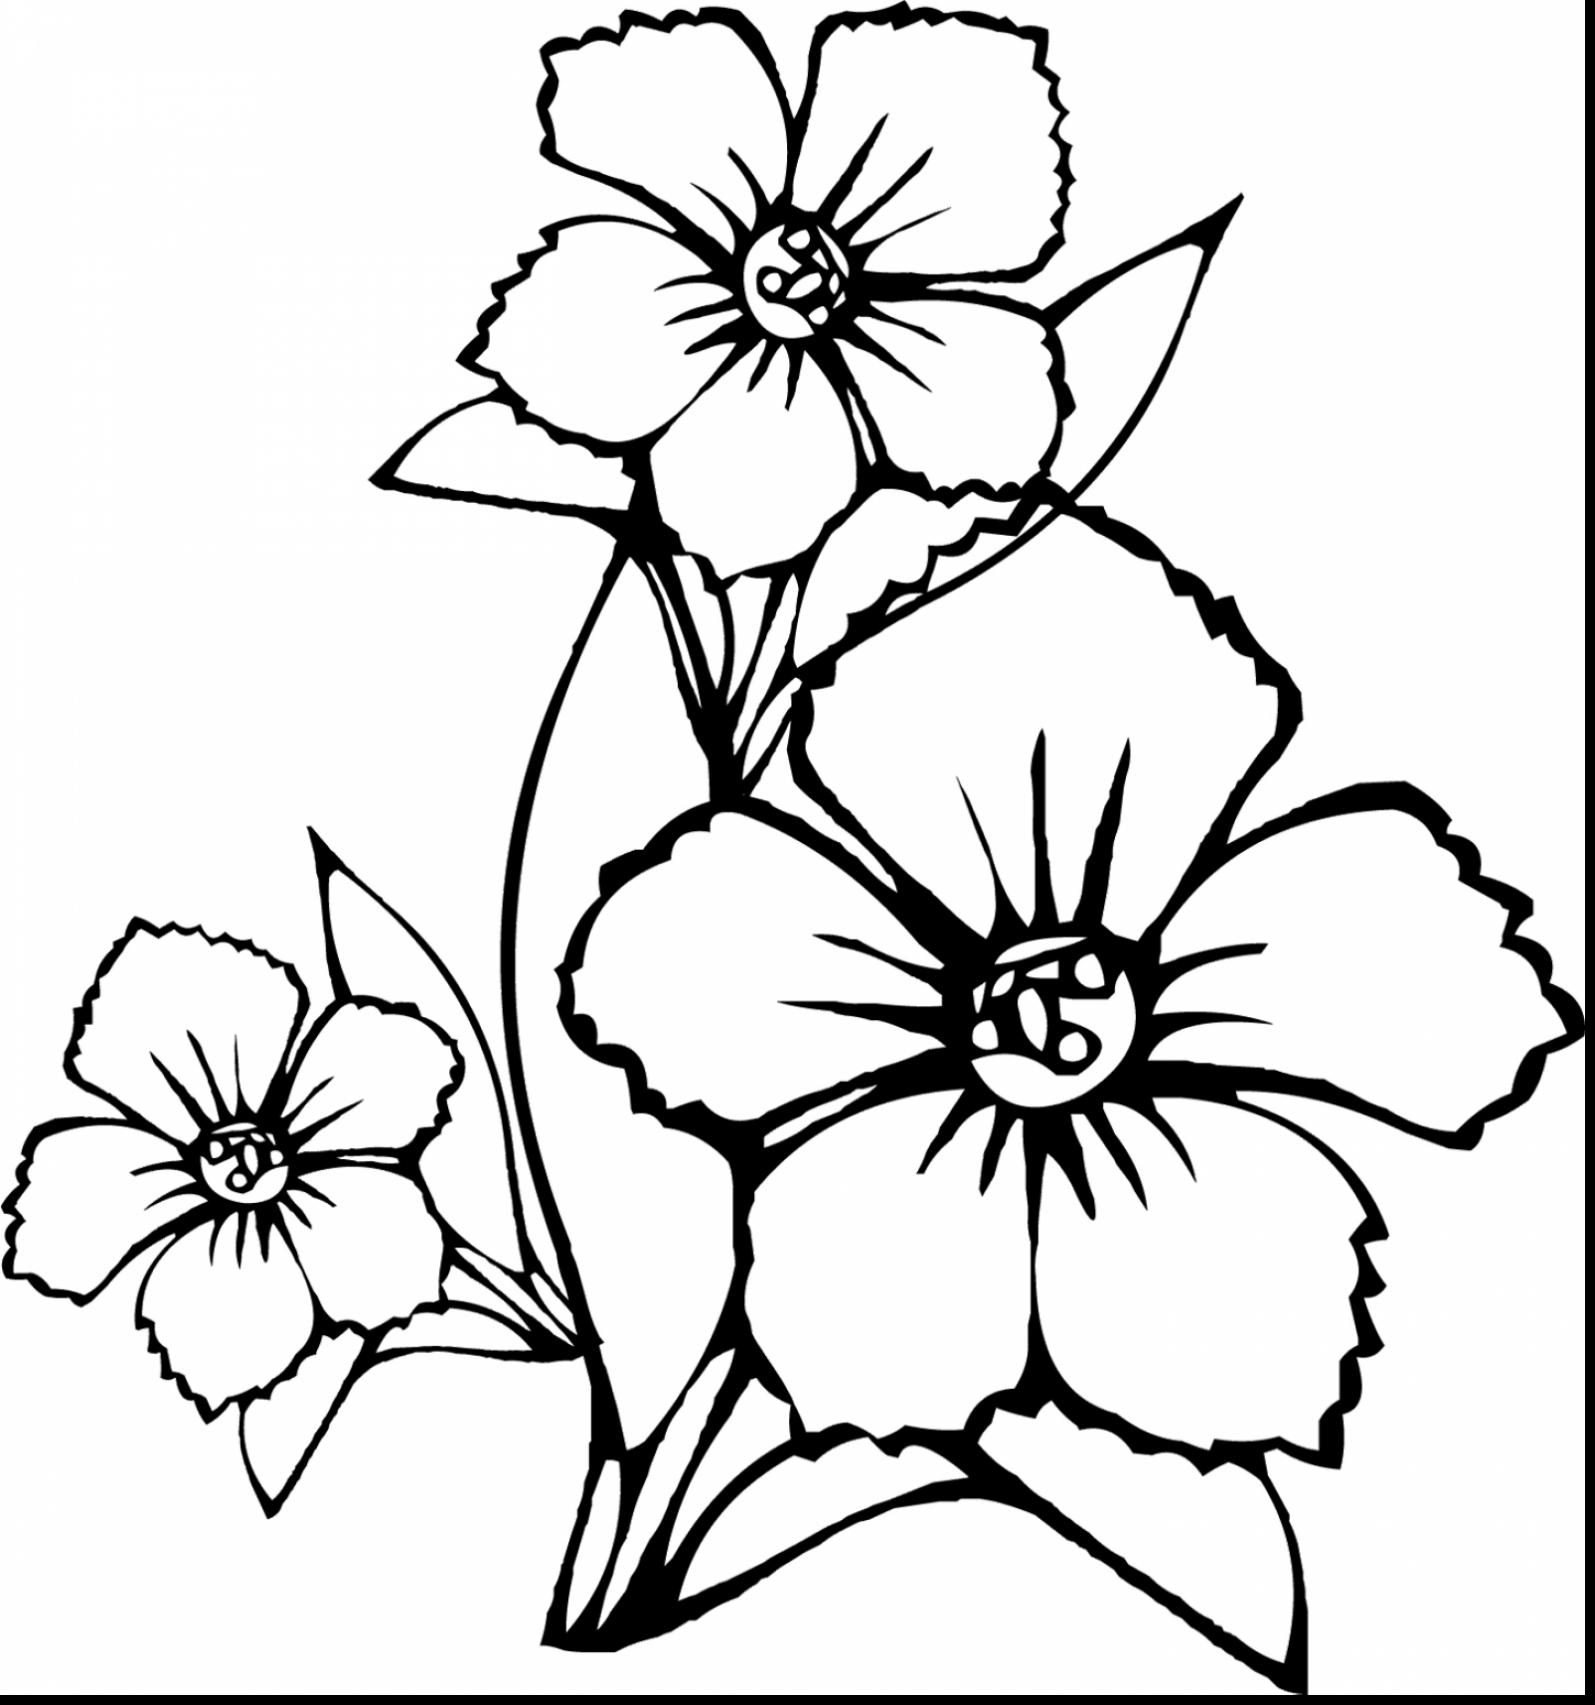 1595x1705 Stylist Design Flowers Coloring Pages Birds Secretary Bird Page